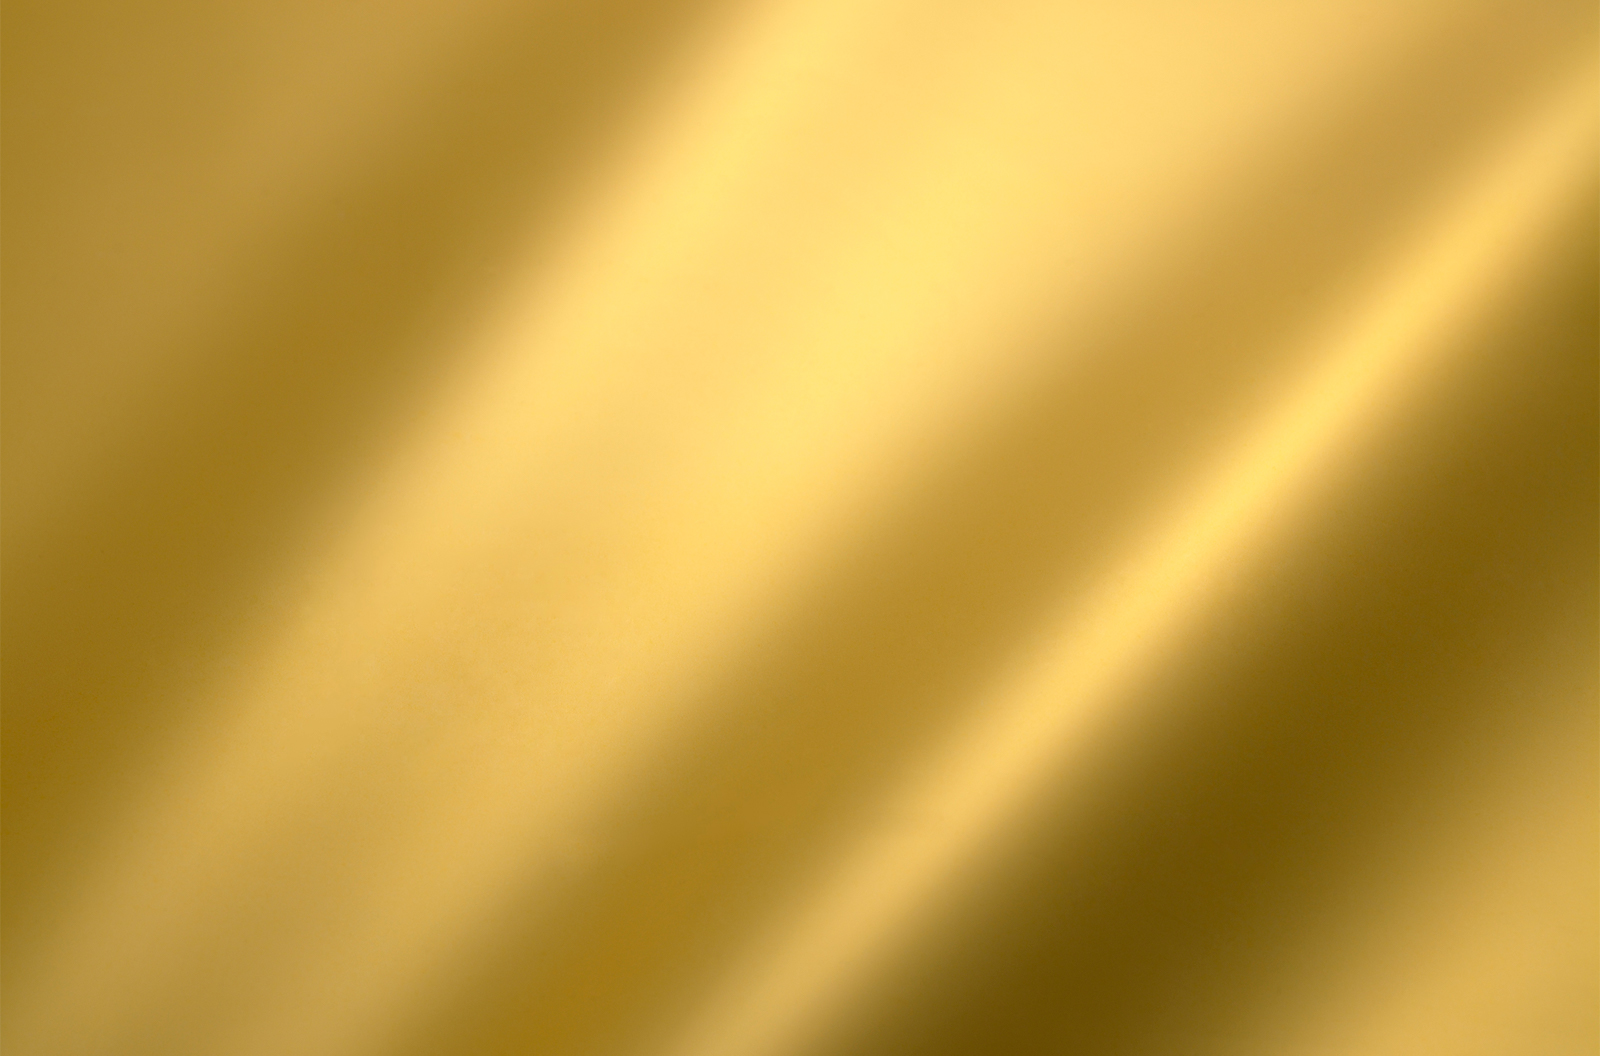 Golden metal sheet background with crease texture